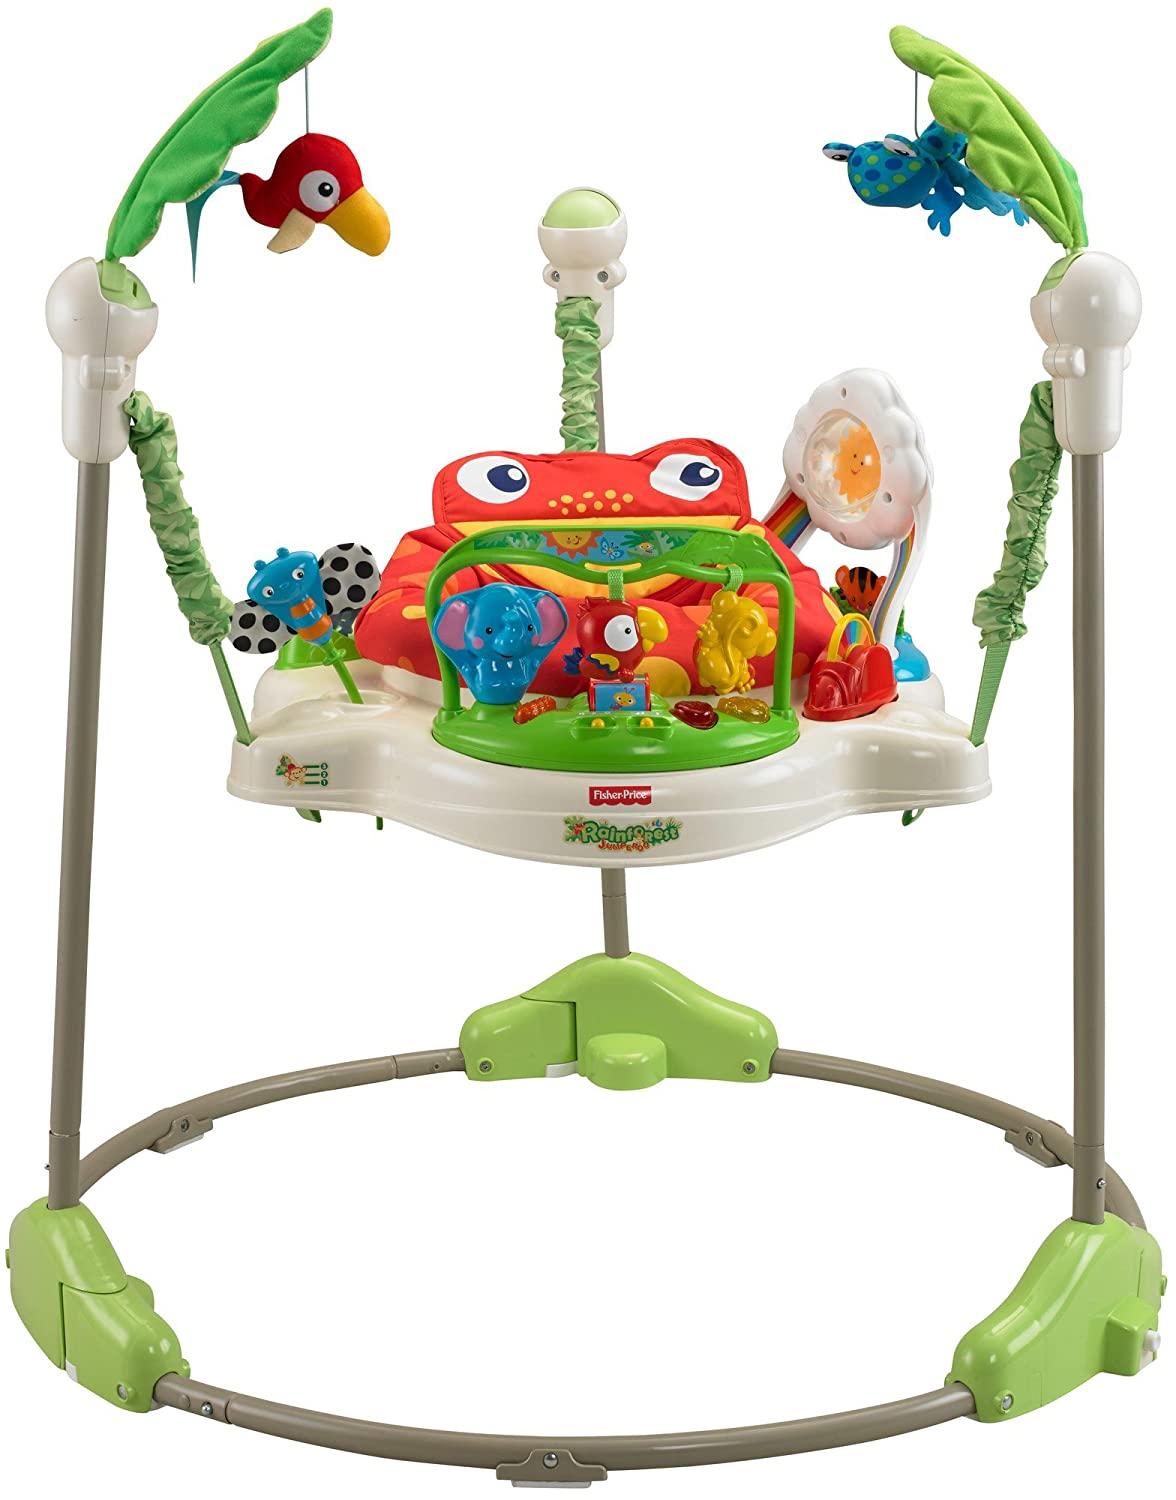 Fisher price jumperoo - Amazon Com Fisher Price Rainforest Jumperoo Infant Bouncers And Rockers Baby